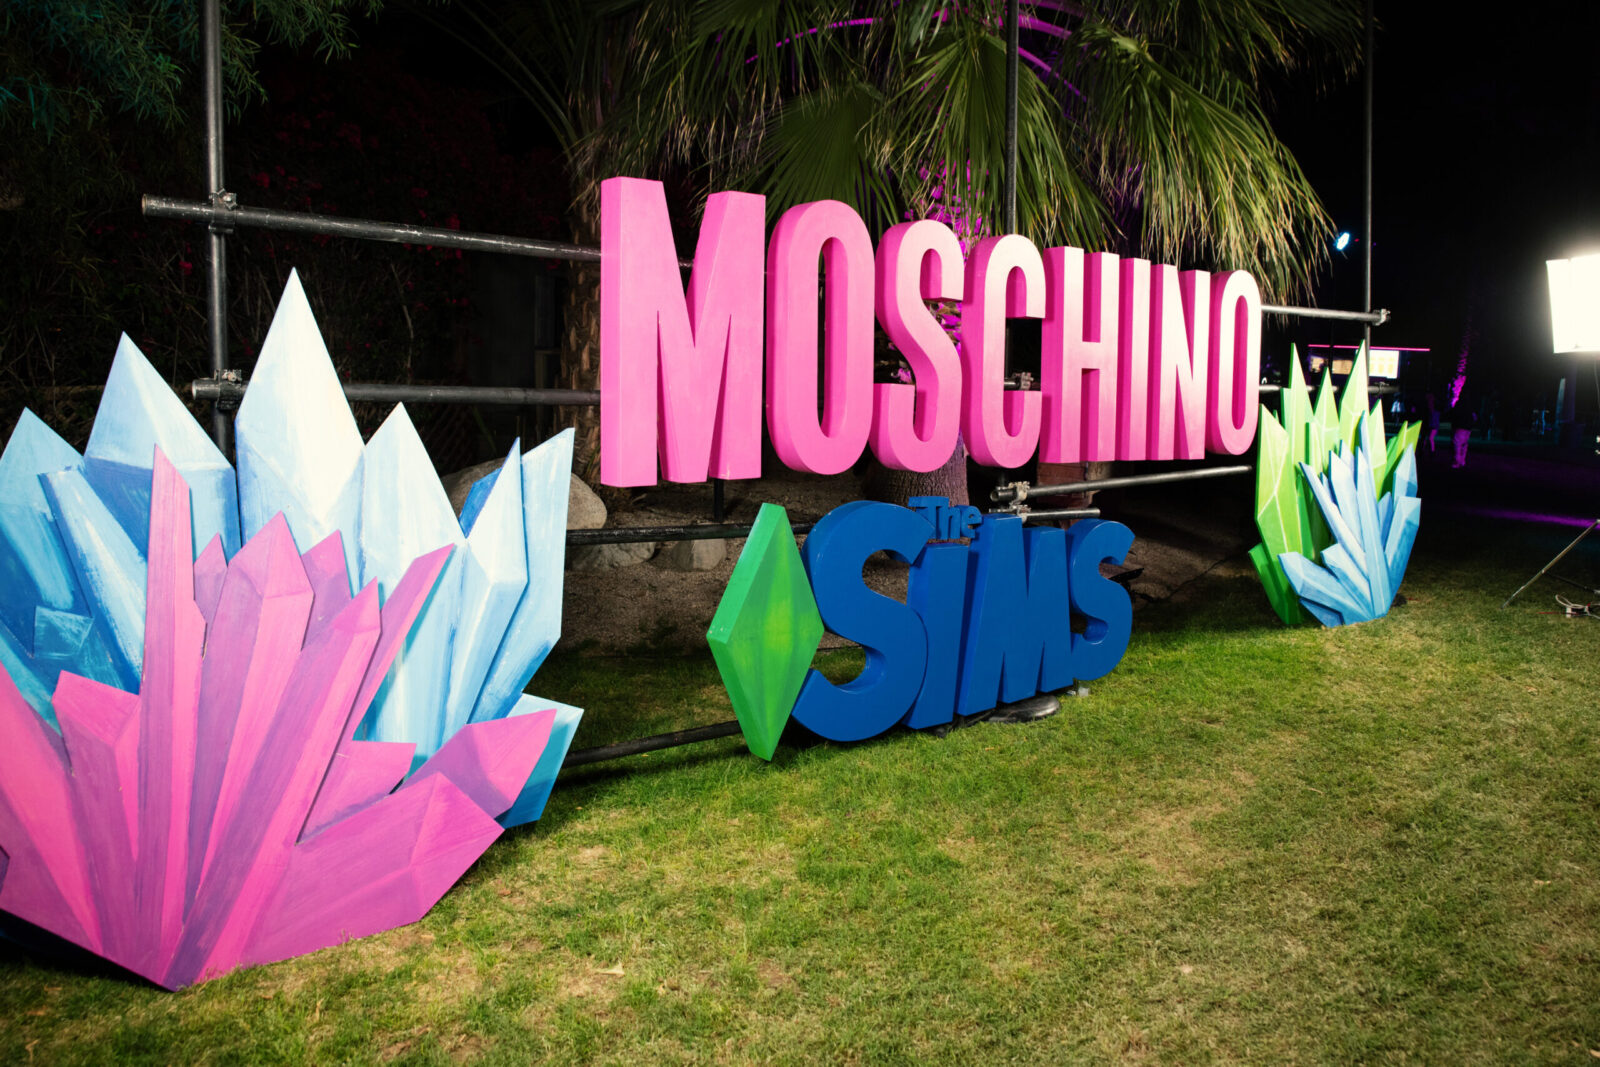 moschino and sims signage at sonic block party marketing agency event